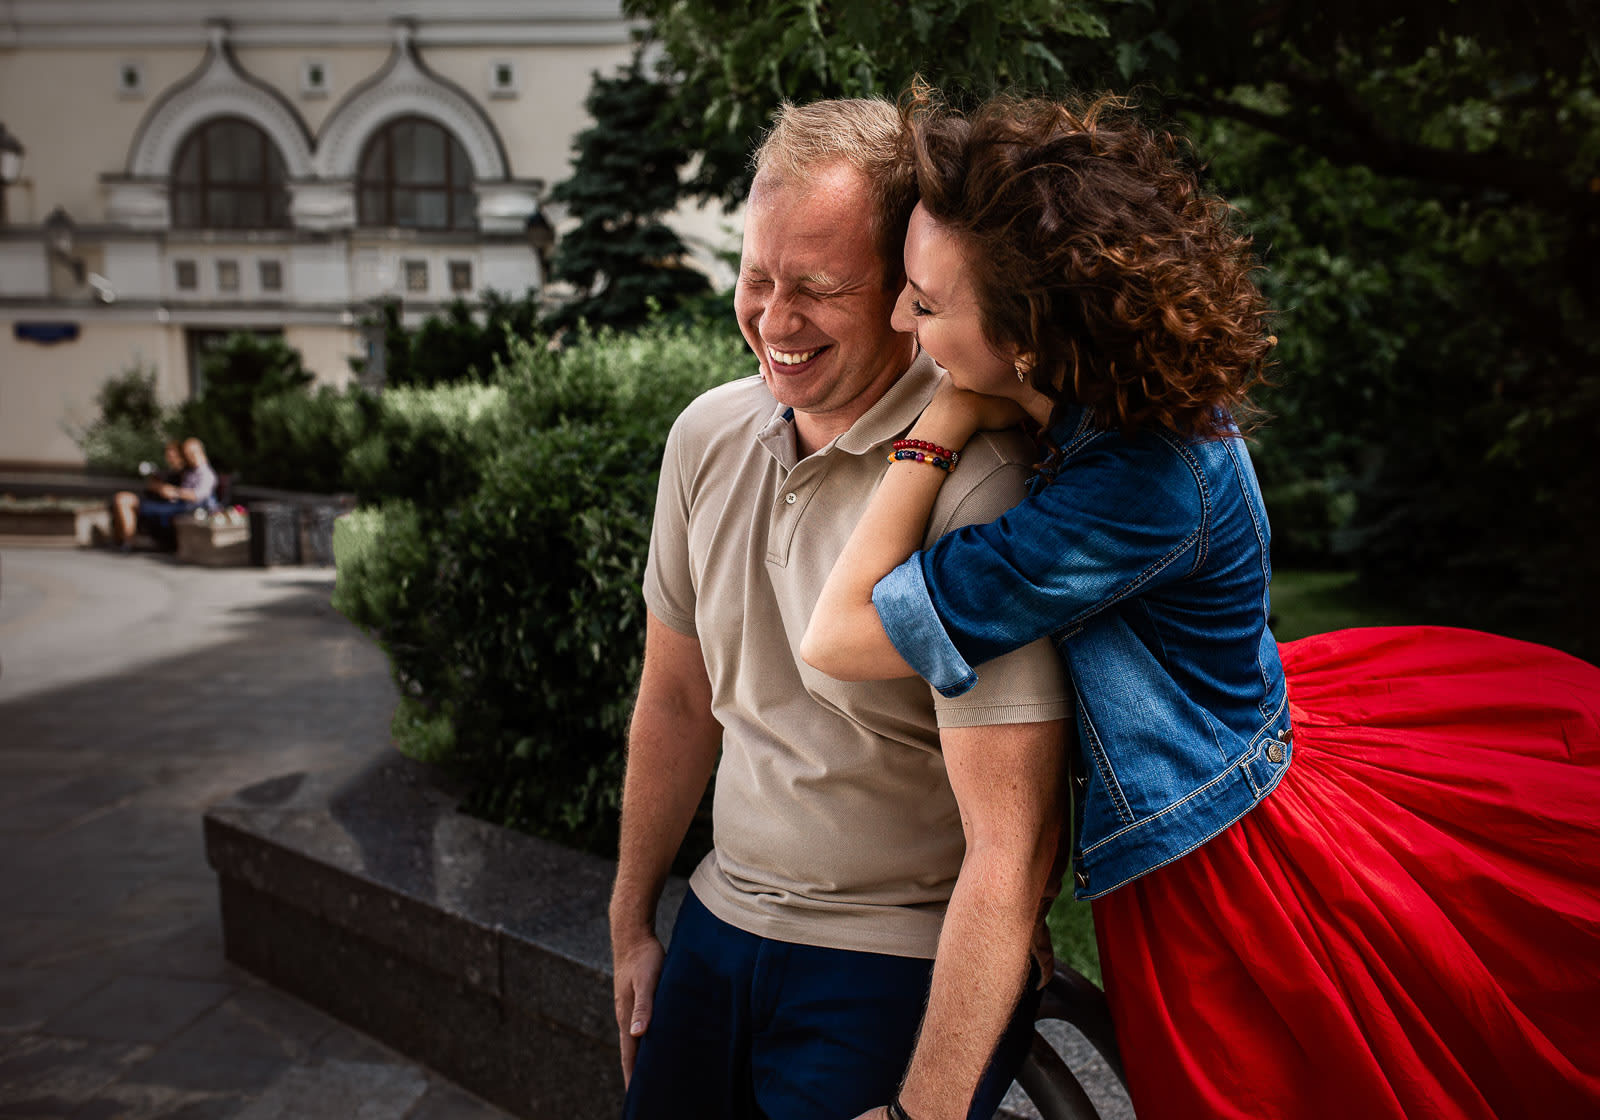 engagement photographer in raleigh photography packages and pricing